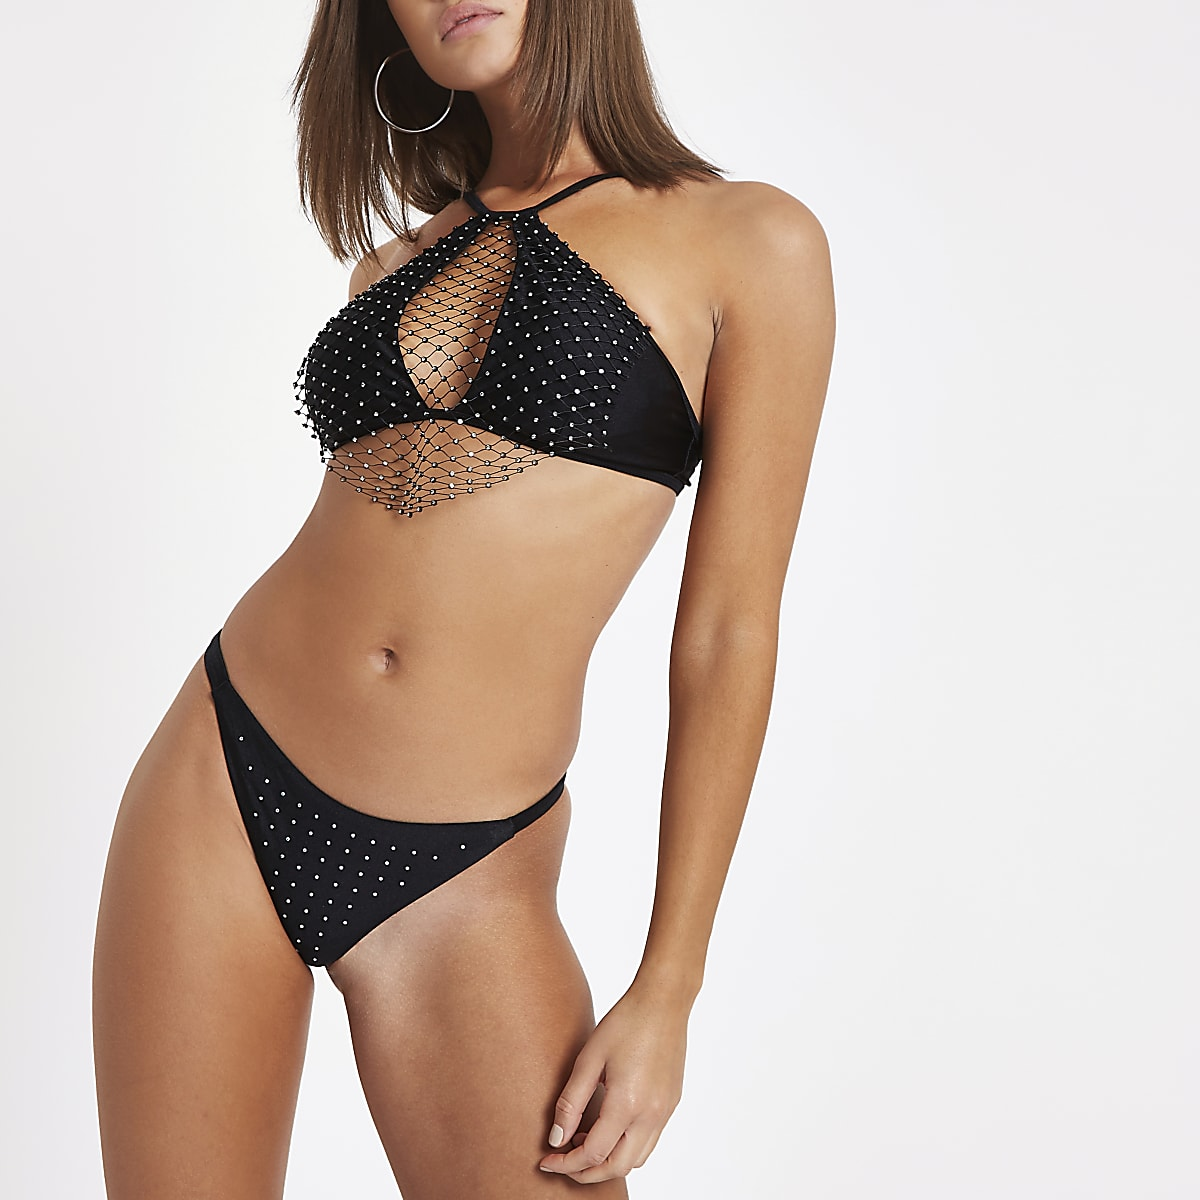 Black diamante thong bikini bottoms